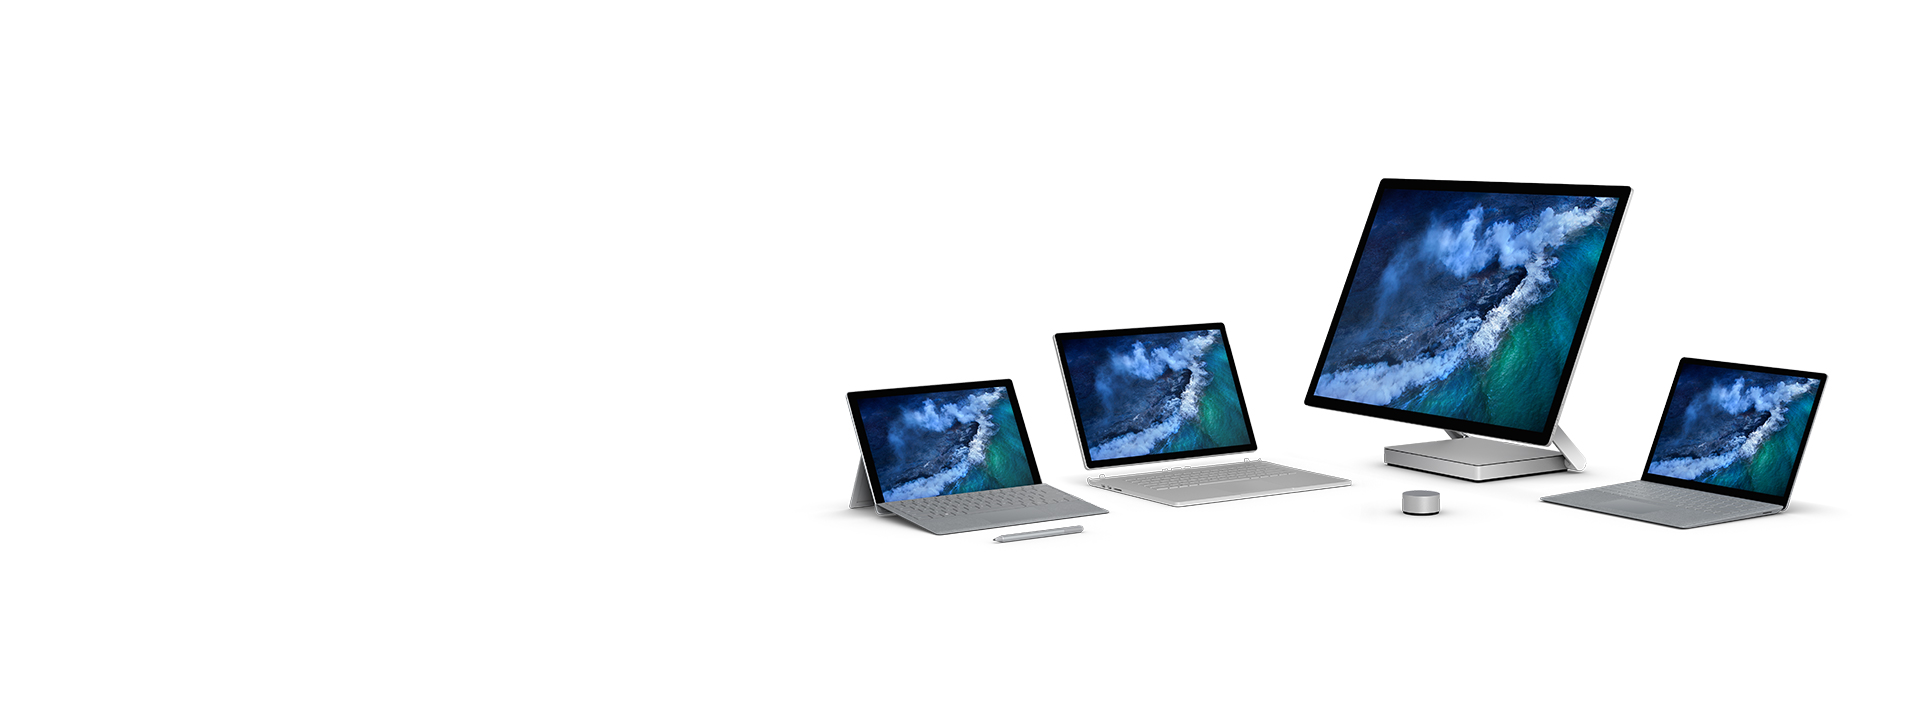 Surface ファミリー – Surface Pro と Surface Laptop、Surface Book 2、Surface Studio